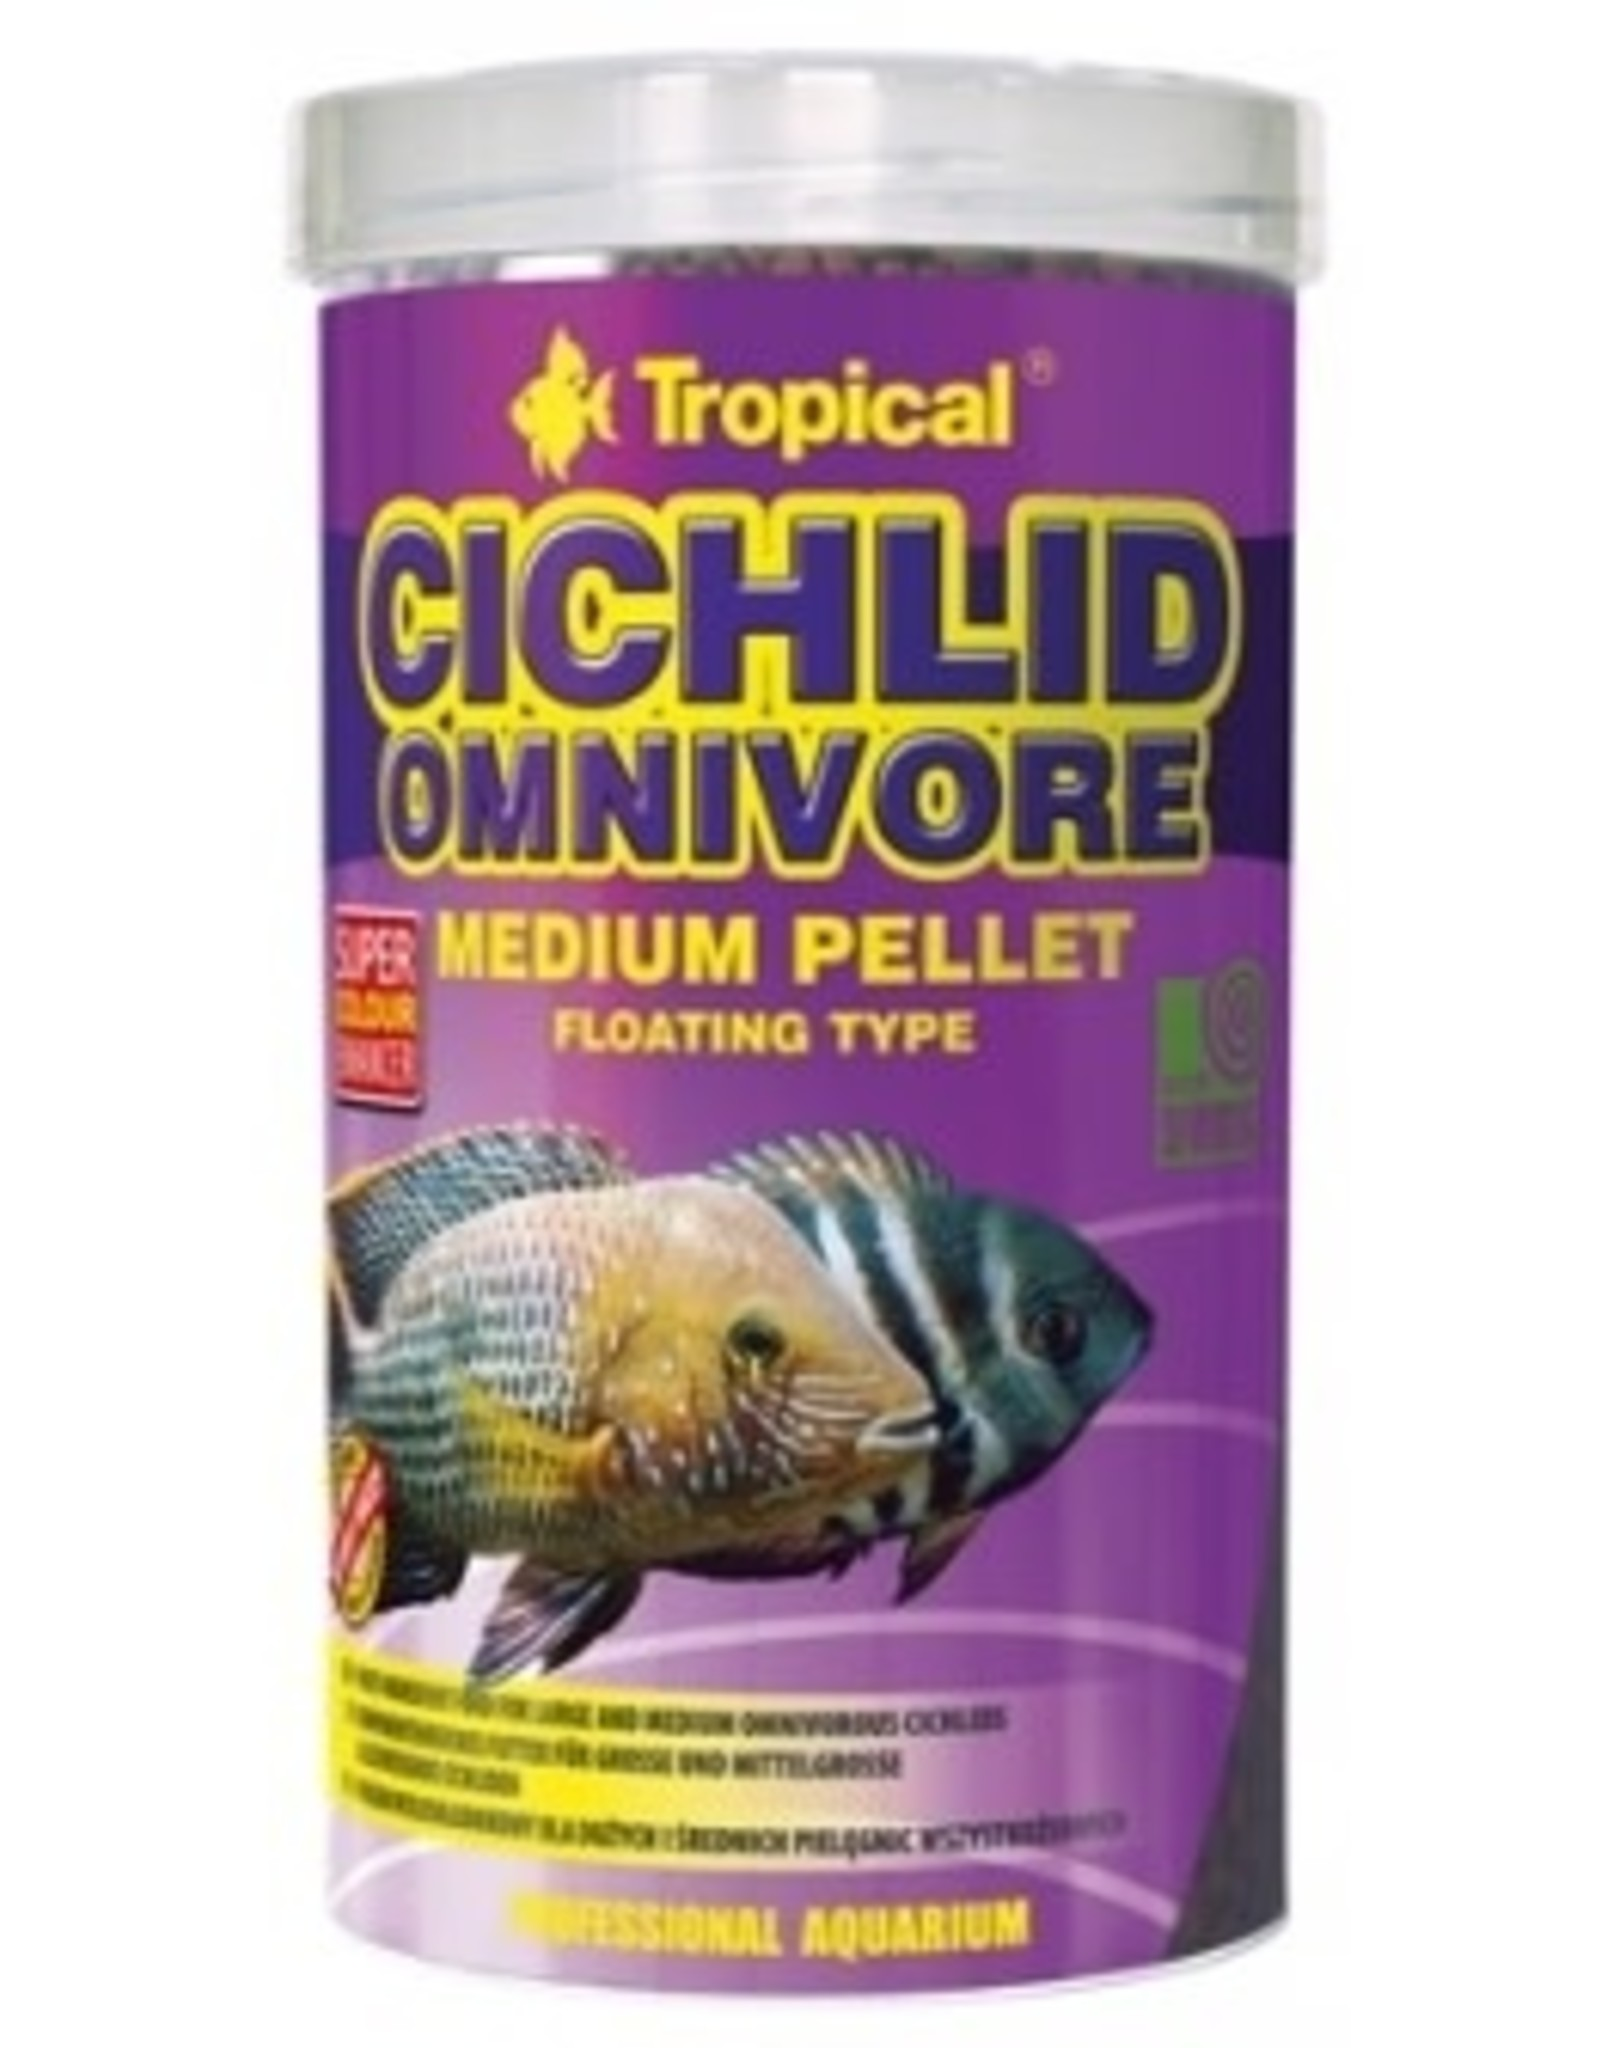 Tropical CICHLID OMNIVORE